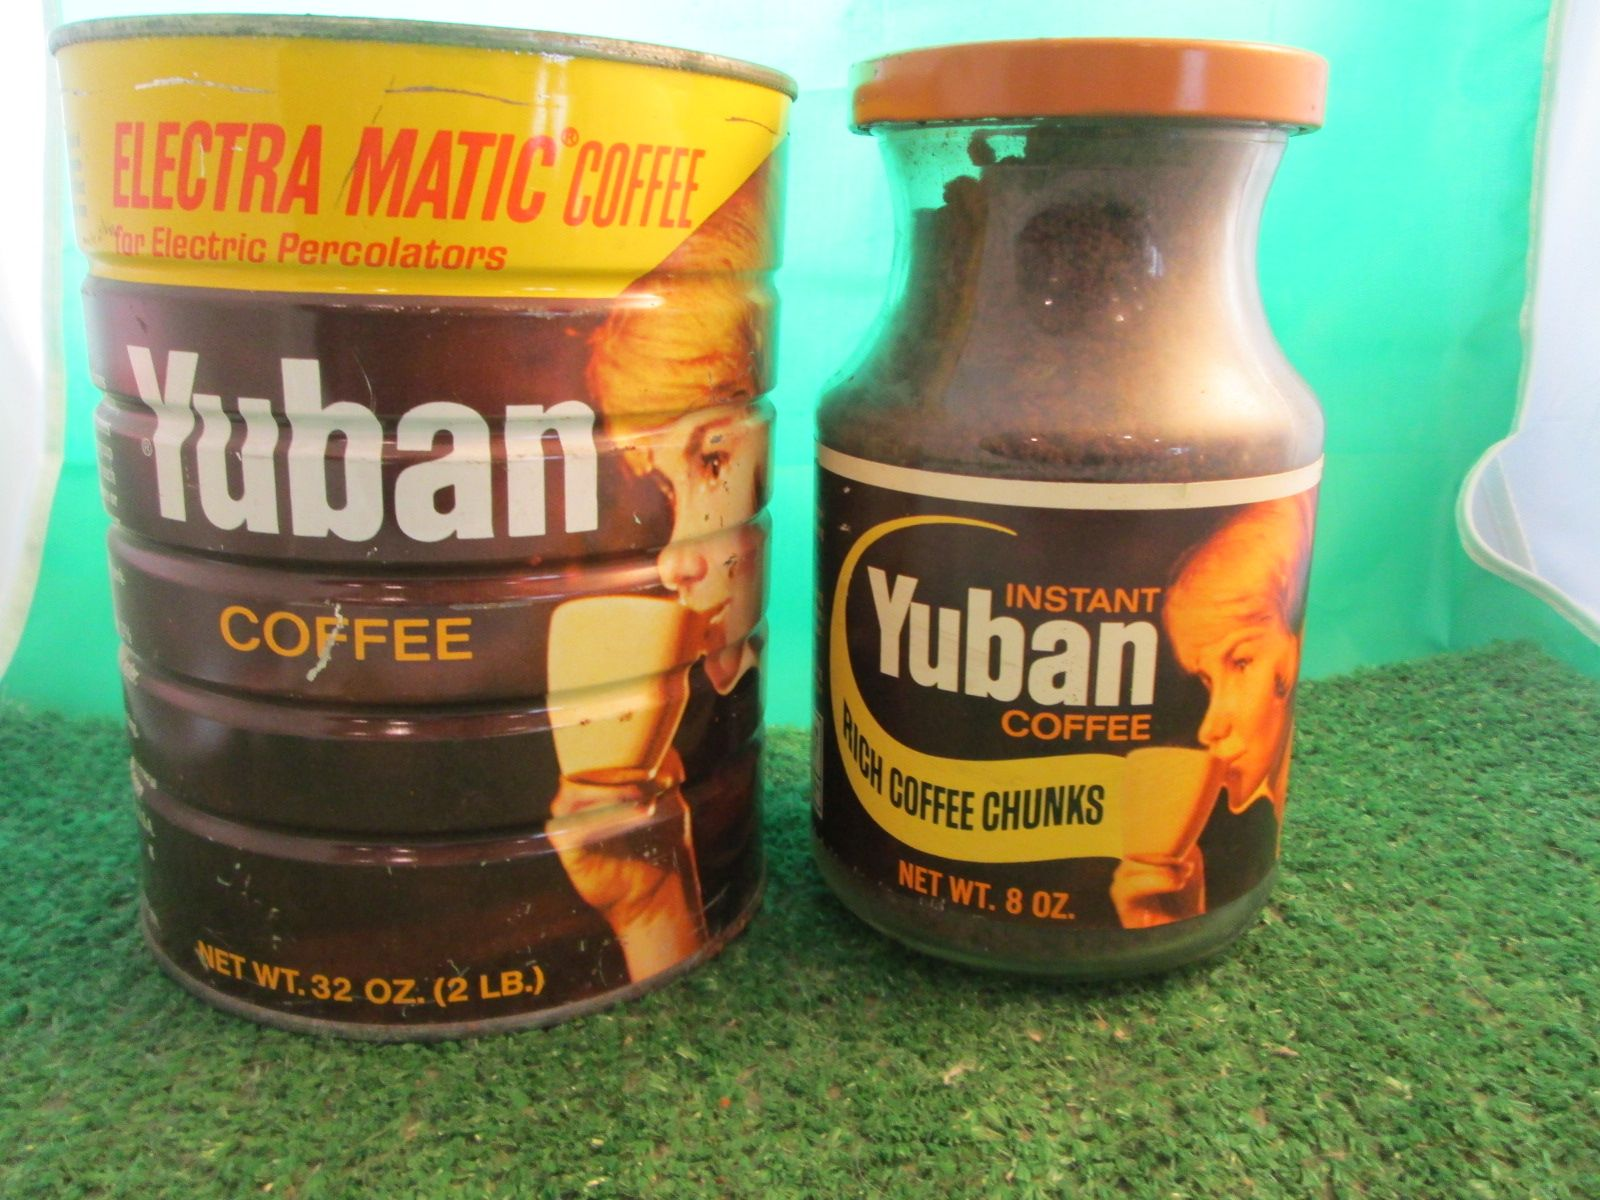 yuban coffee essay Yuban coffee essay example for free - research papers yuban coffee review - is the original gold coffee is yuban coffee just another grocery store brand that is available locally and online.